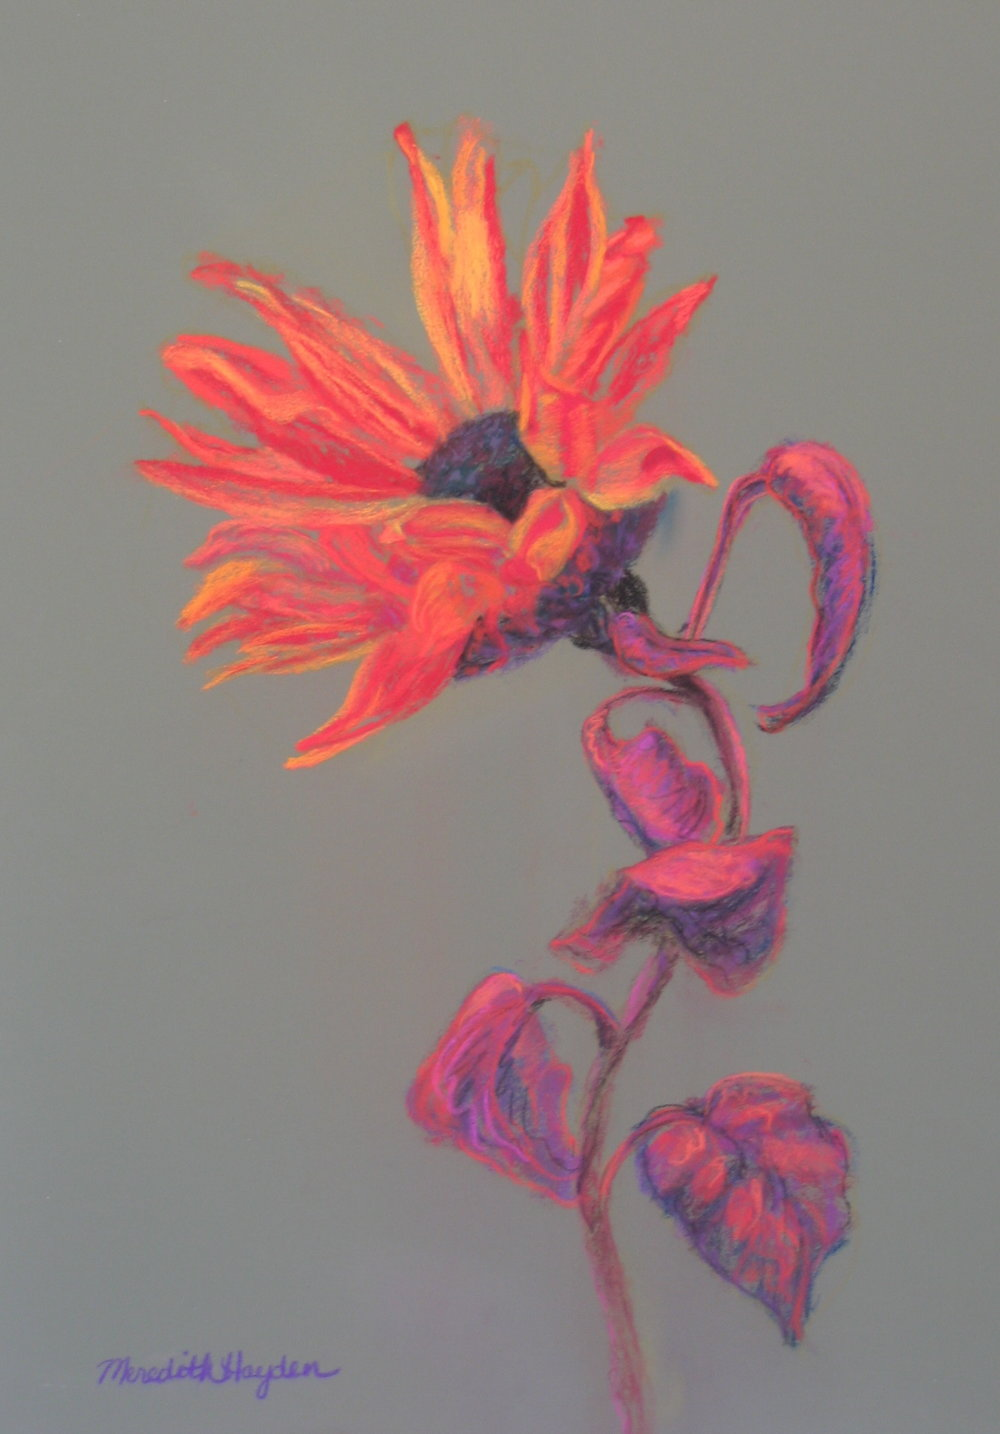 """Fiery"" by Meredith Hayden, Chalk Pastel, 24x30in, 2007, Private collection"